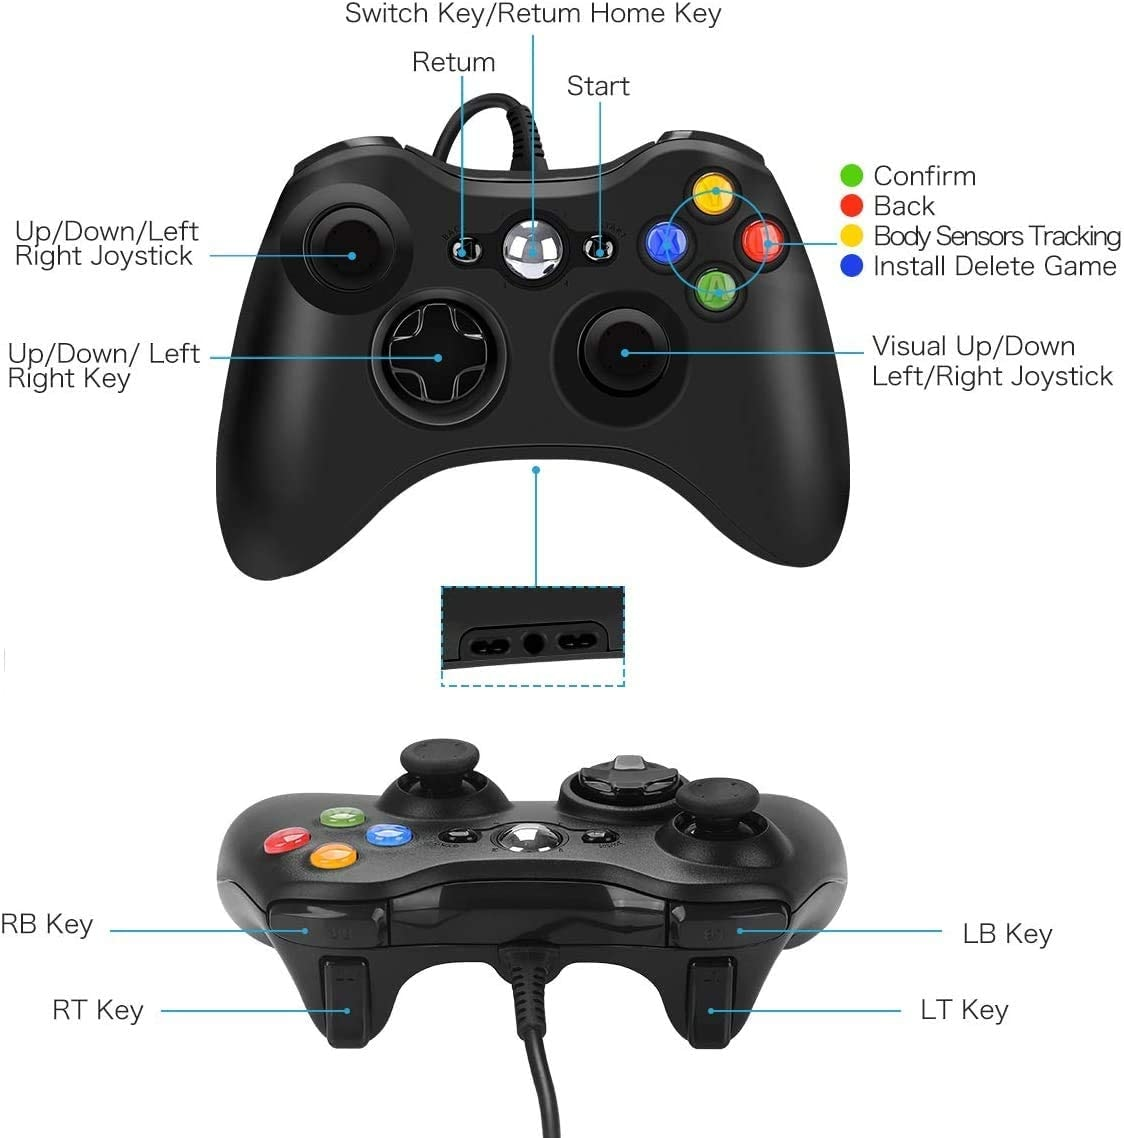 USB Wired Controller Game Accessories Gamepad Joypad Joystick For Microsoft XBOX360 Console PC Black - 5